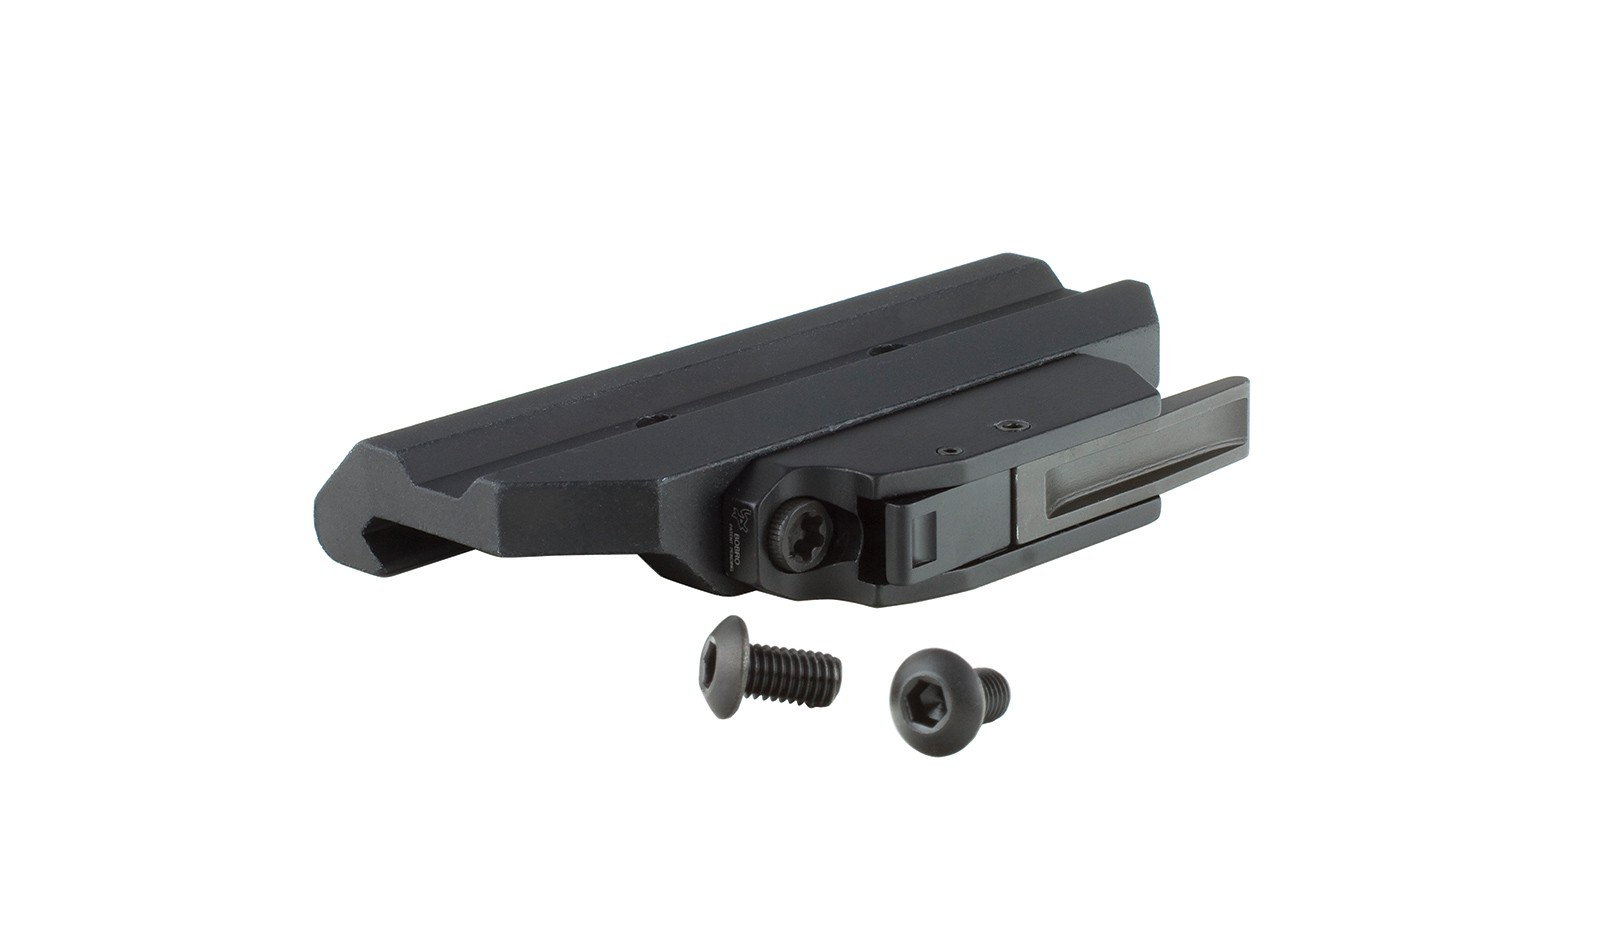 Trijicon® Trijicon Quick Release Mount for 3.5x, 4x, and 5.5x, ACOG®, 1-6x VCOG®, and 1x42 Reflex (w/ ACOG Base)